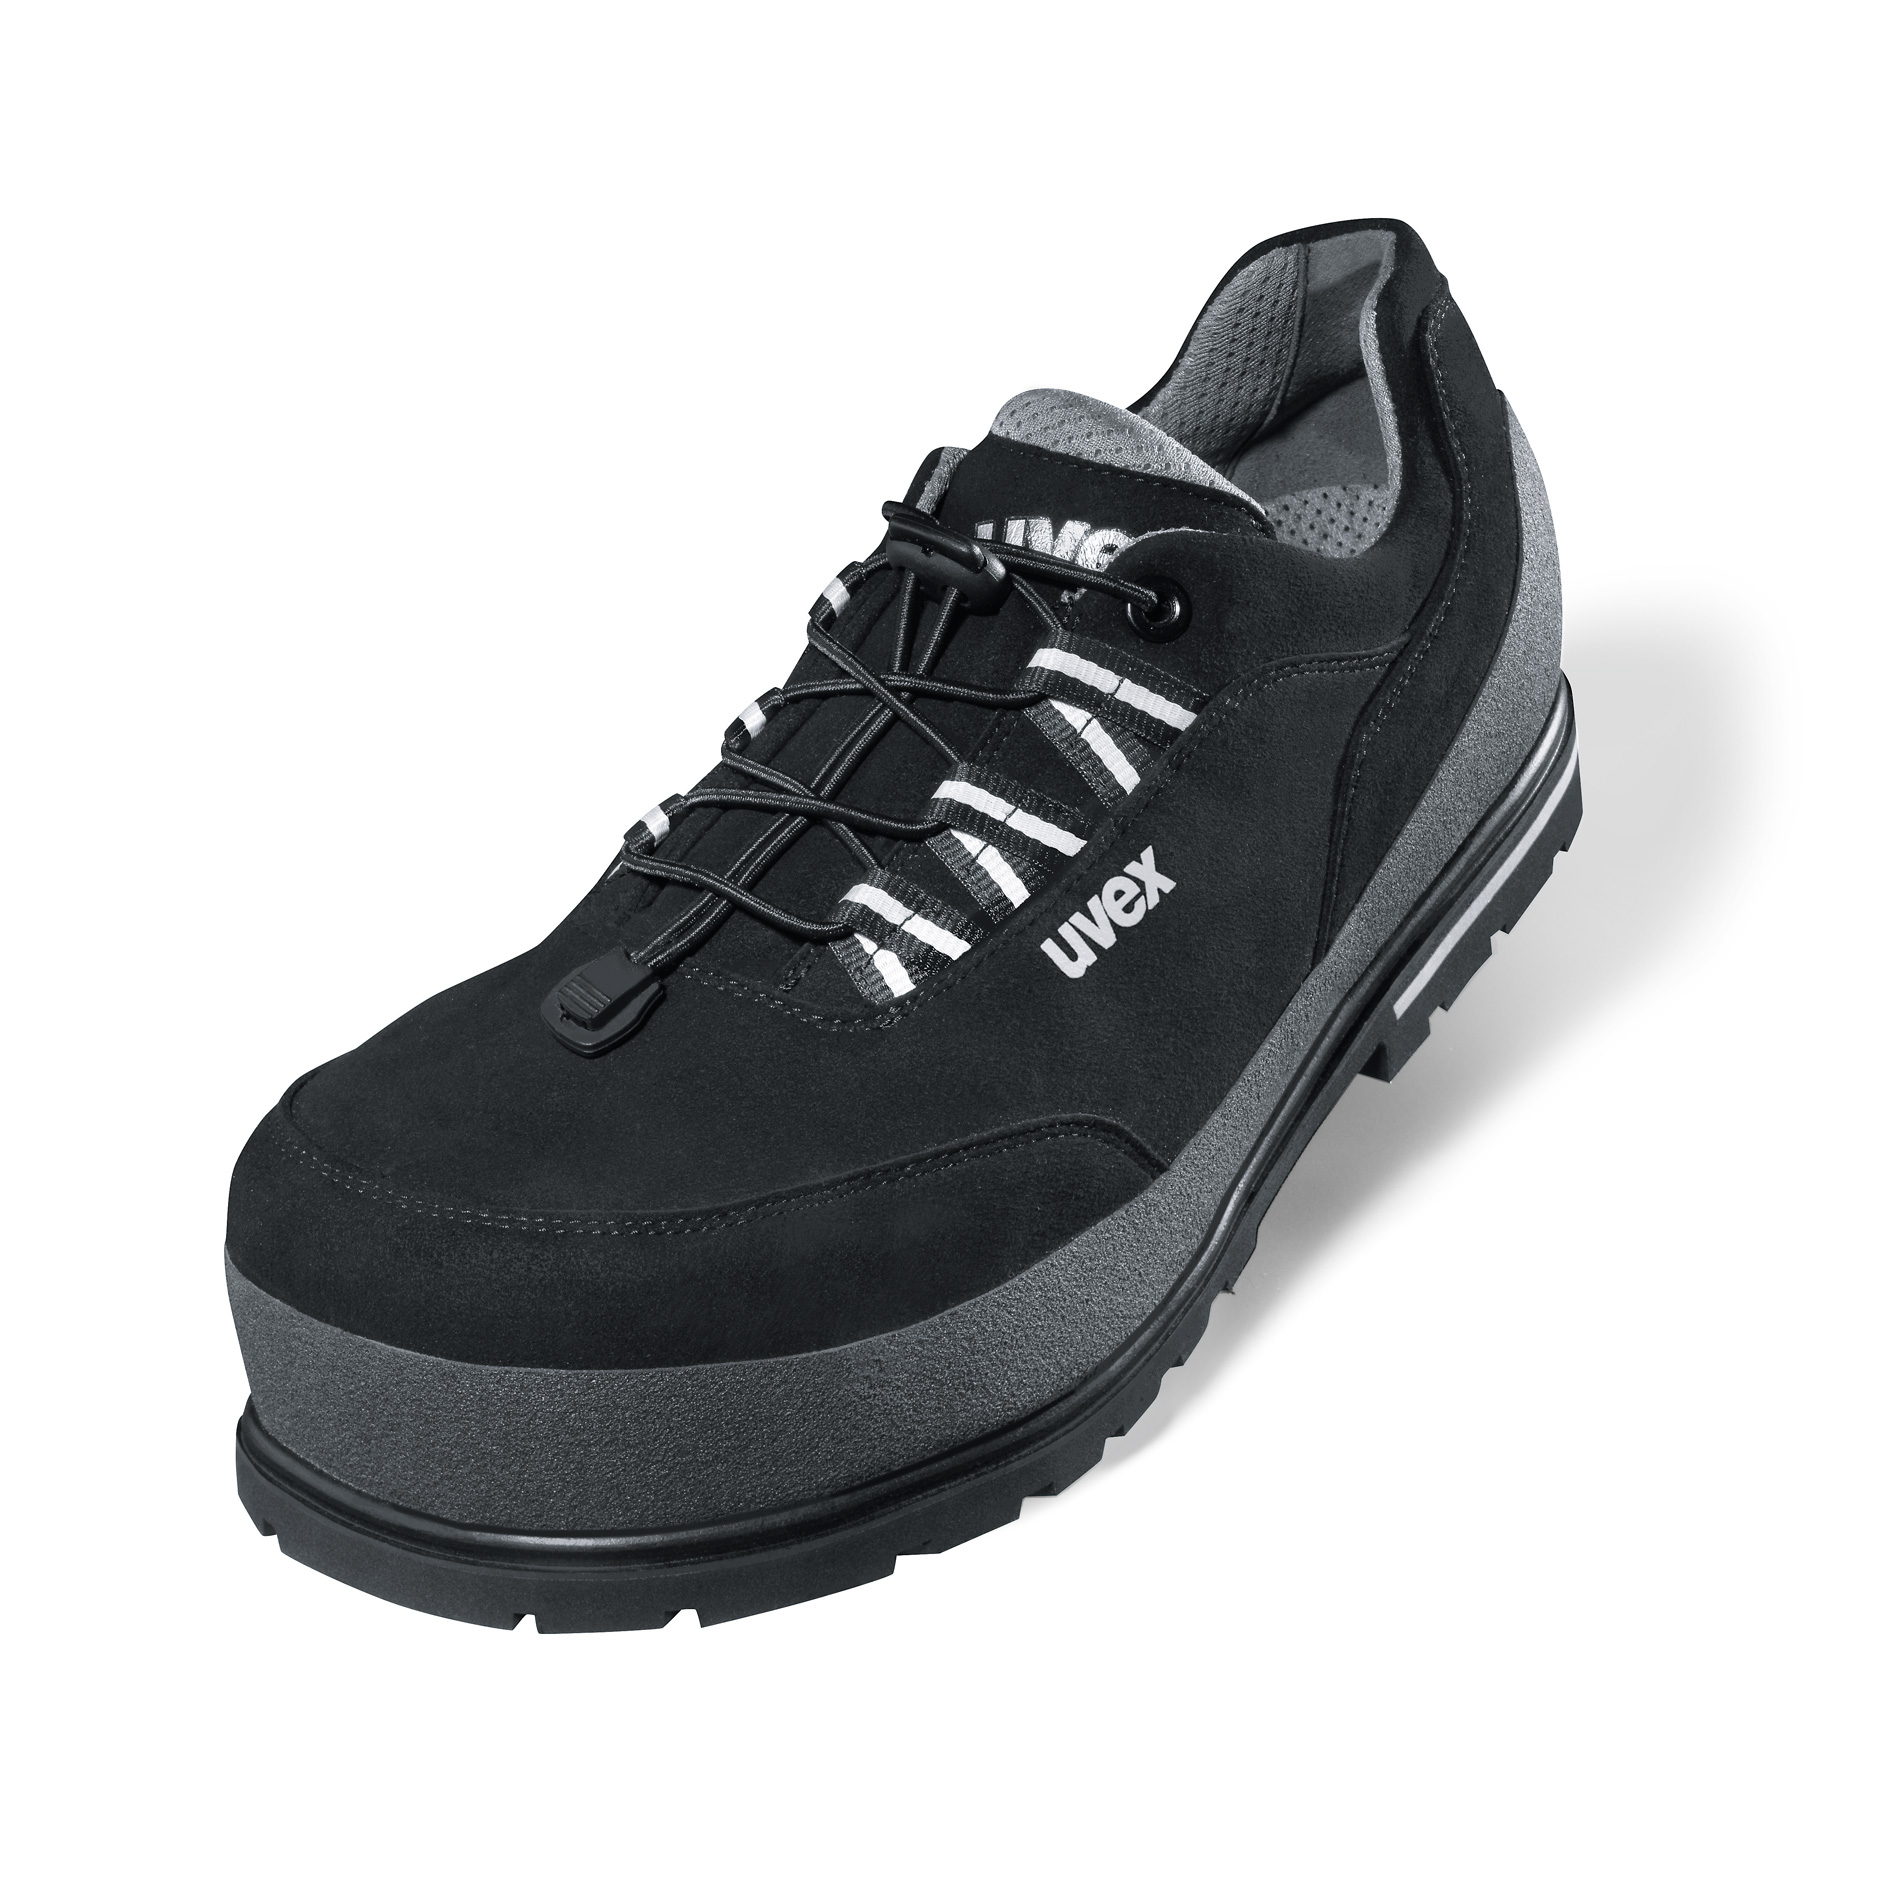 41e9a9a10e4 uvex motion 3XL S3 SRC shoe | Safety shoes | uvex safety